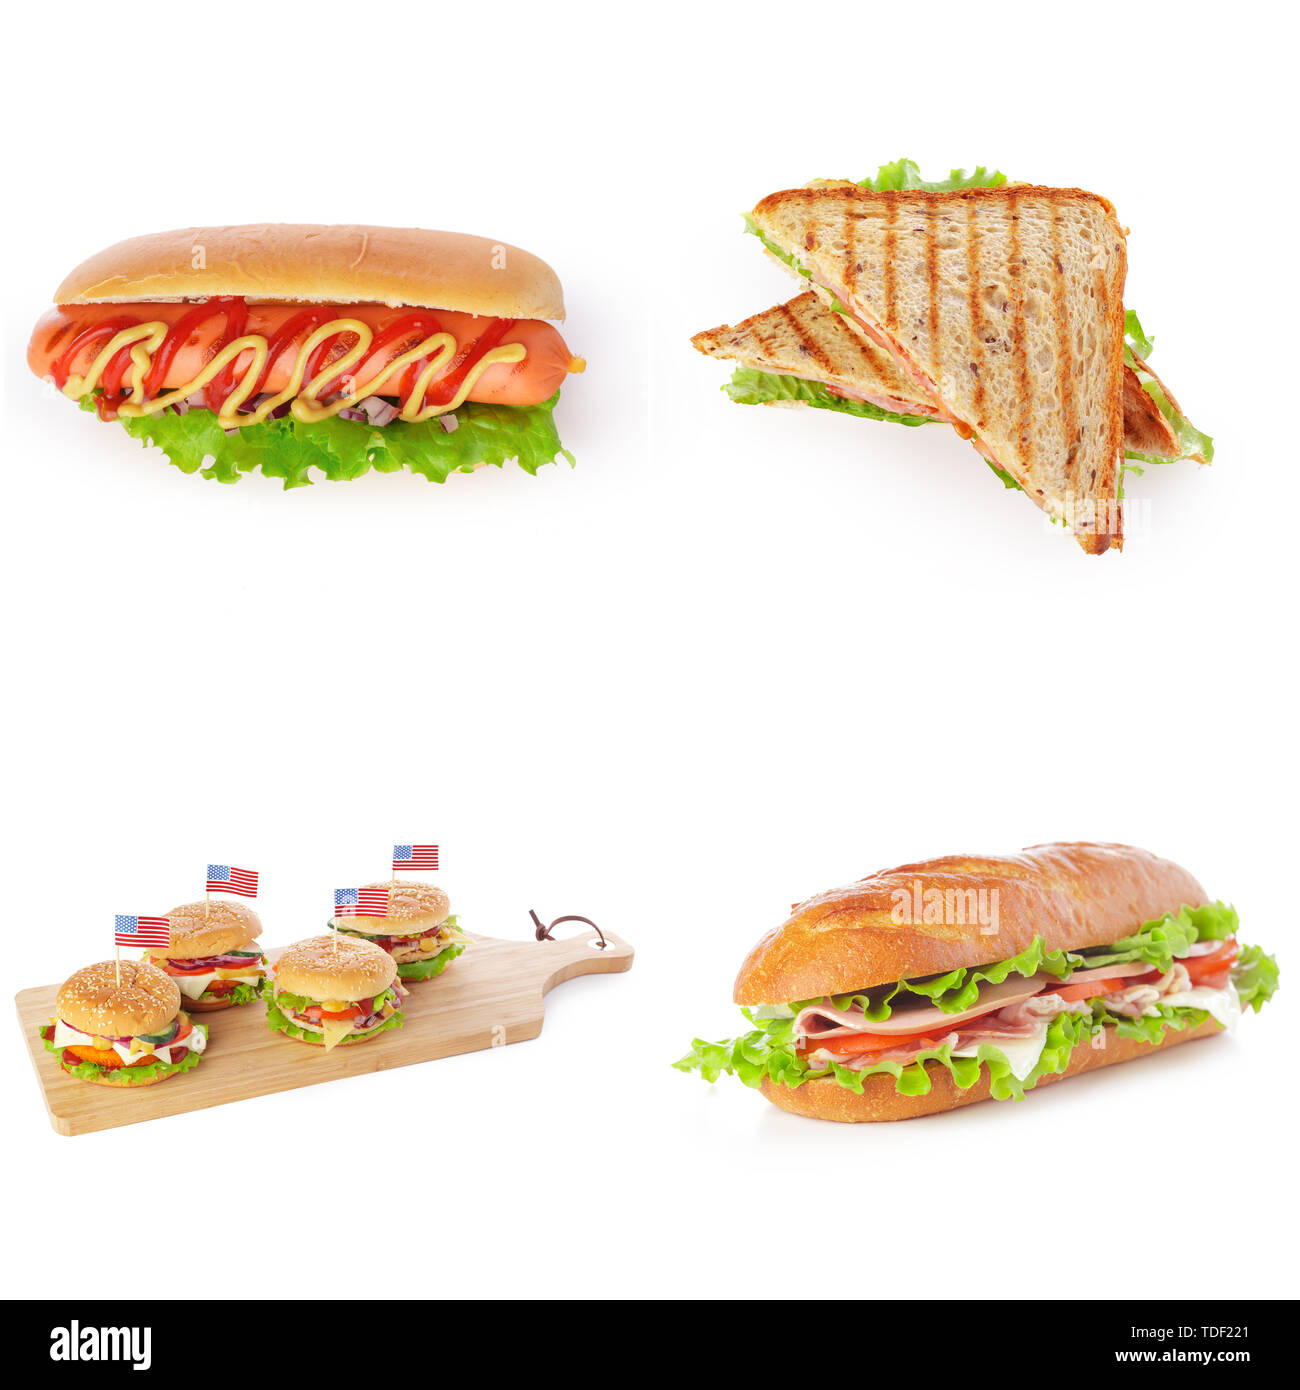 Junk fast food collage of burgers, sandwiches and hot-dogs isolated on white background - Stock Image